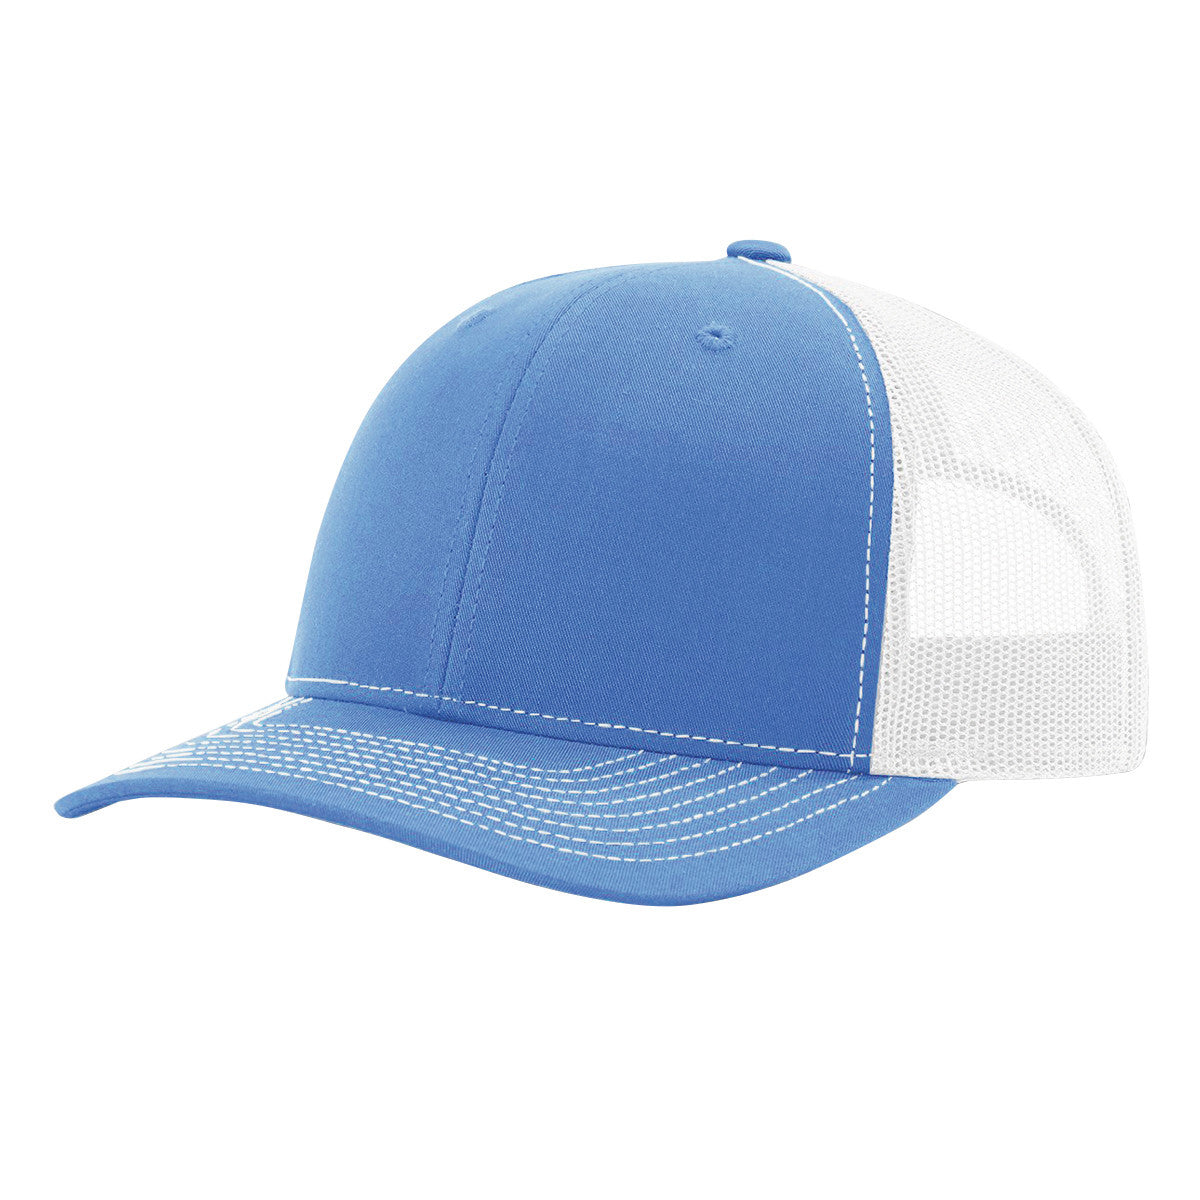 Just Say Hats - Blank and Custom Hats d2c9c9b7357